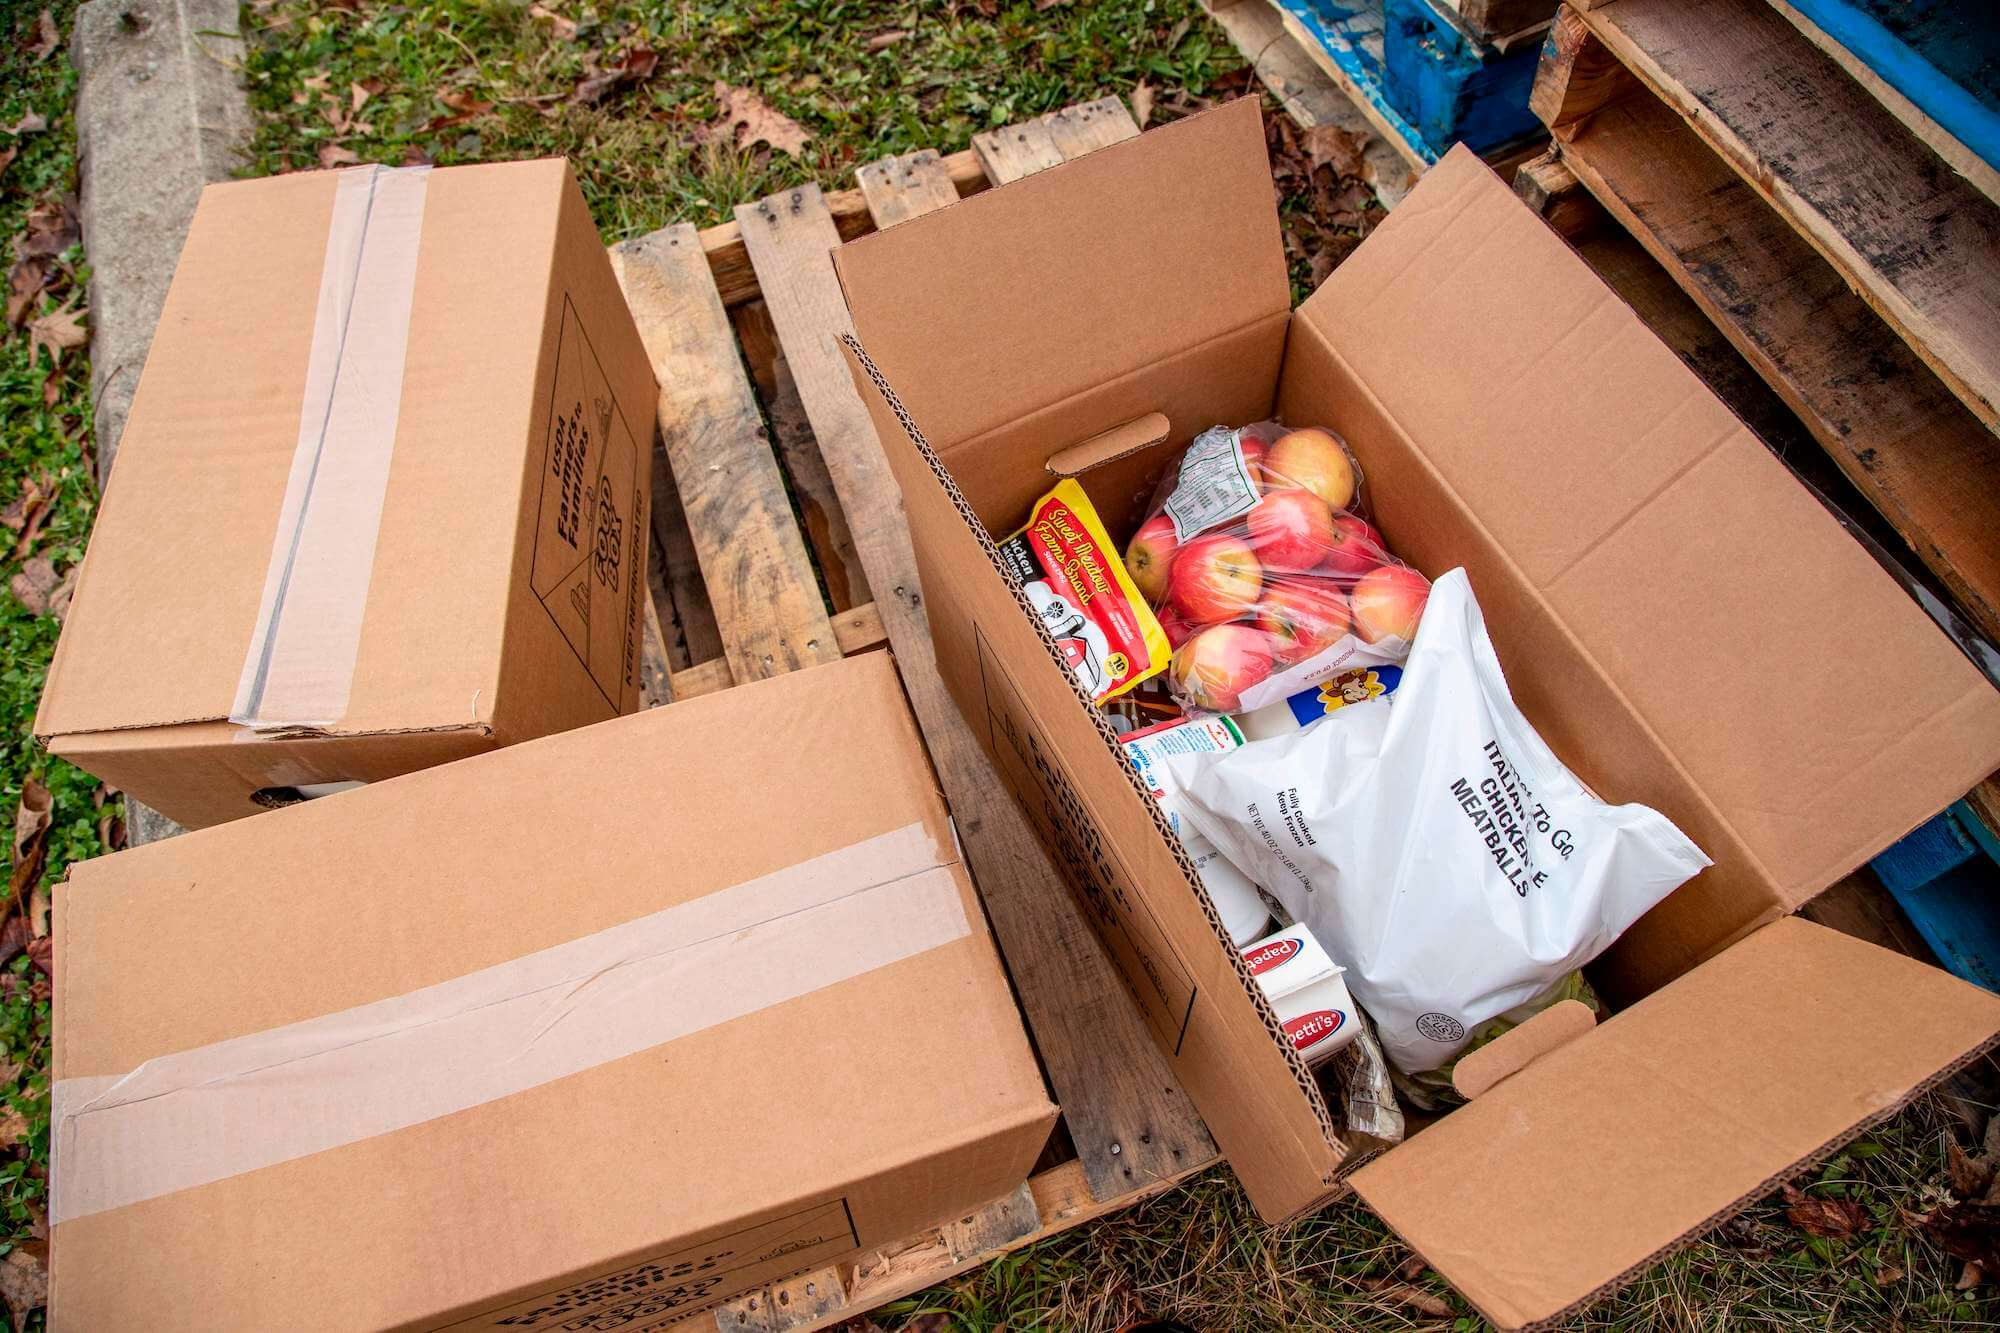 Contents of a USDA Farmers to Families food box includes apples meatballs, hotdogs, milk and other fresh items that need to be consumed in a timely manner in Athens, Ohio on December 19, 2020. - Thousands of food boxes were distributed to families from all over rural Appalachia who were able to drive to the fairgrounds, but most only were able to leave with one box of food for the week of Christmas. April 2021